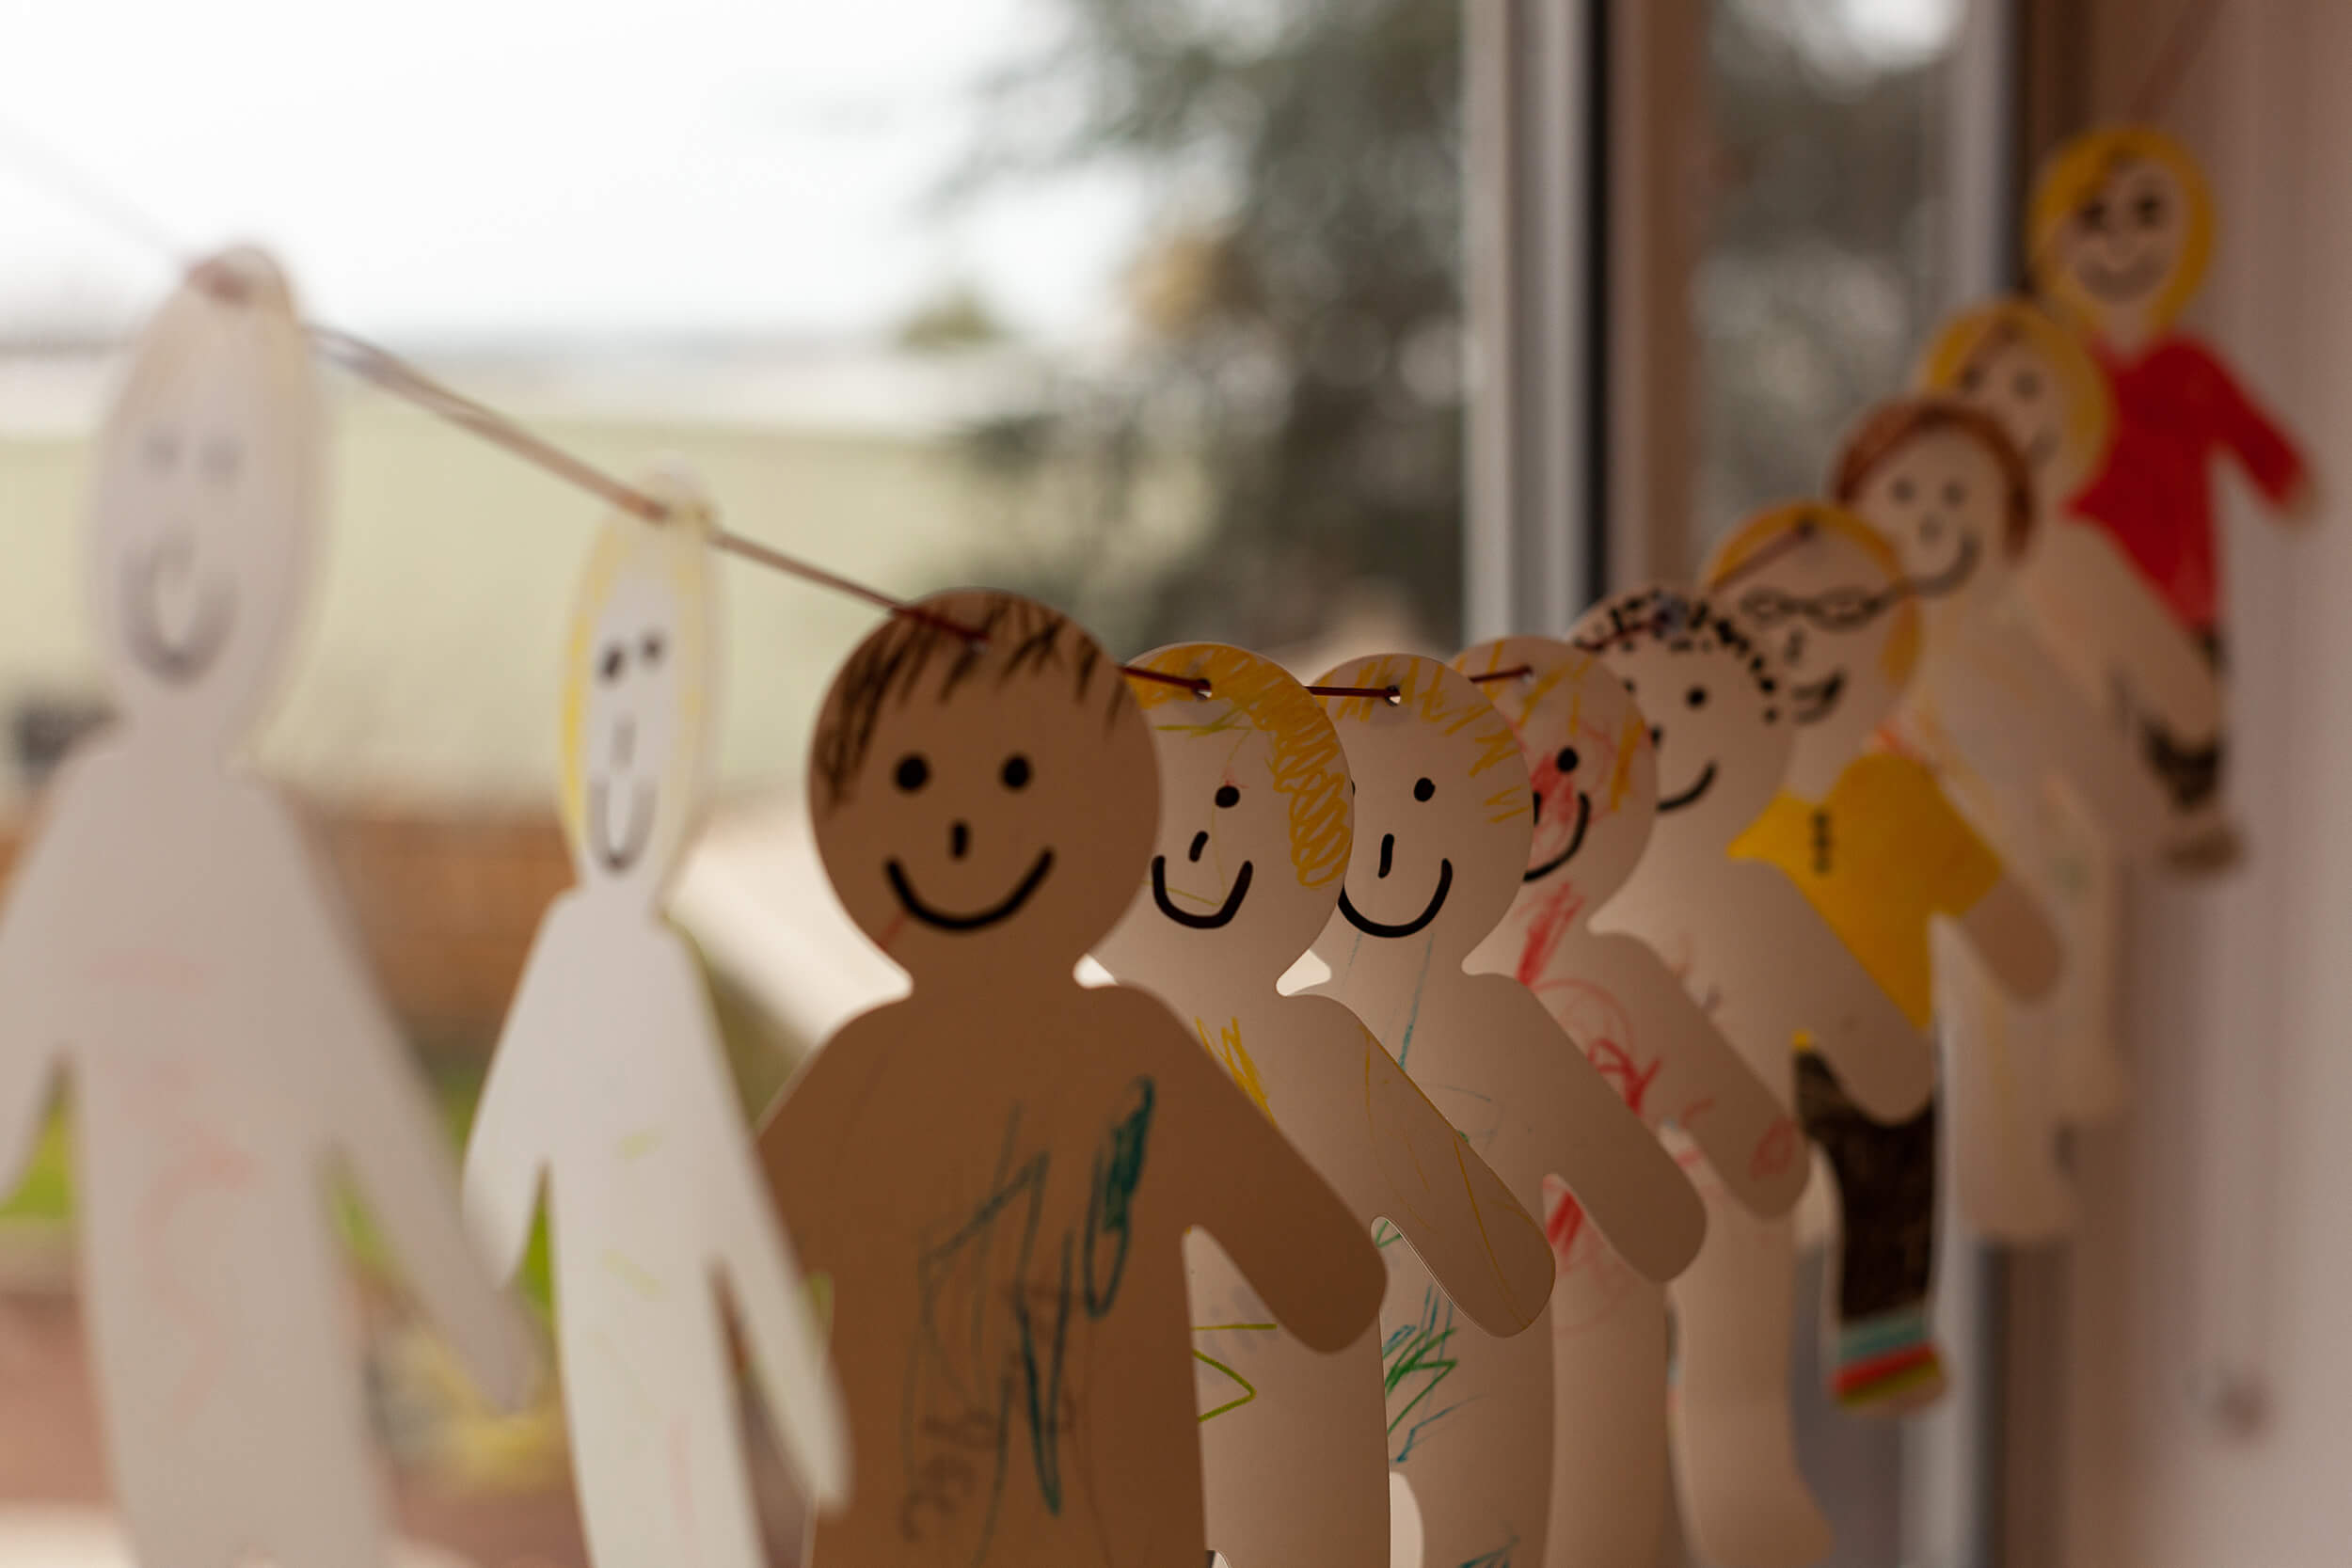 Paper chain people